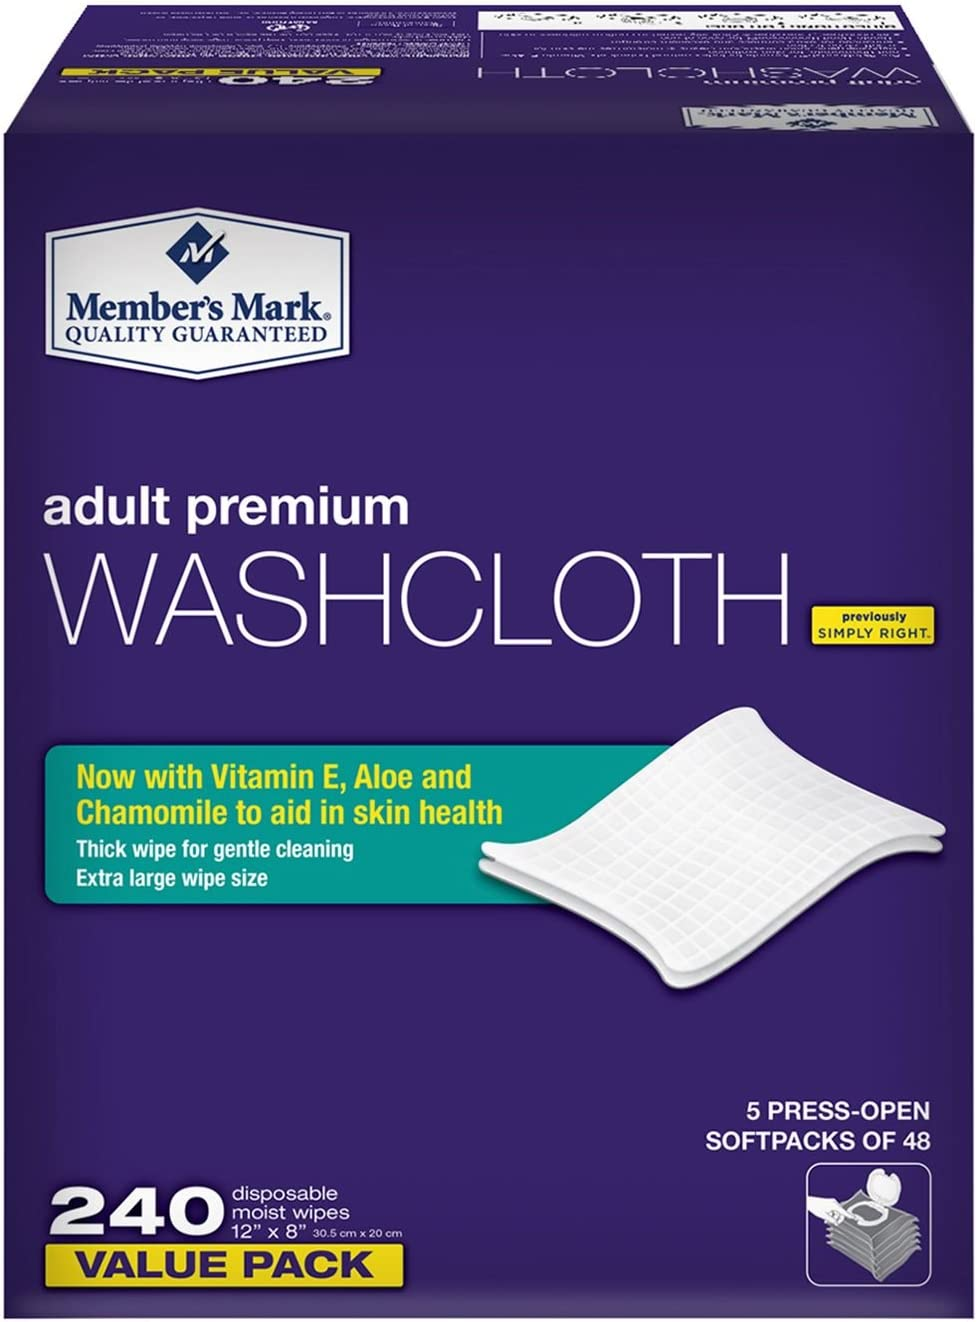 Lowest price challenge Member's Mark Super sale period limited Adult Washcloths 240 pack 6 of ct.